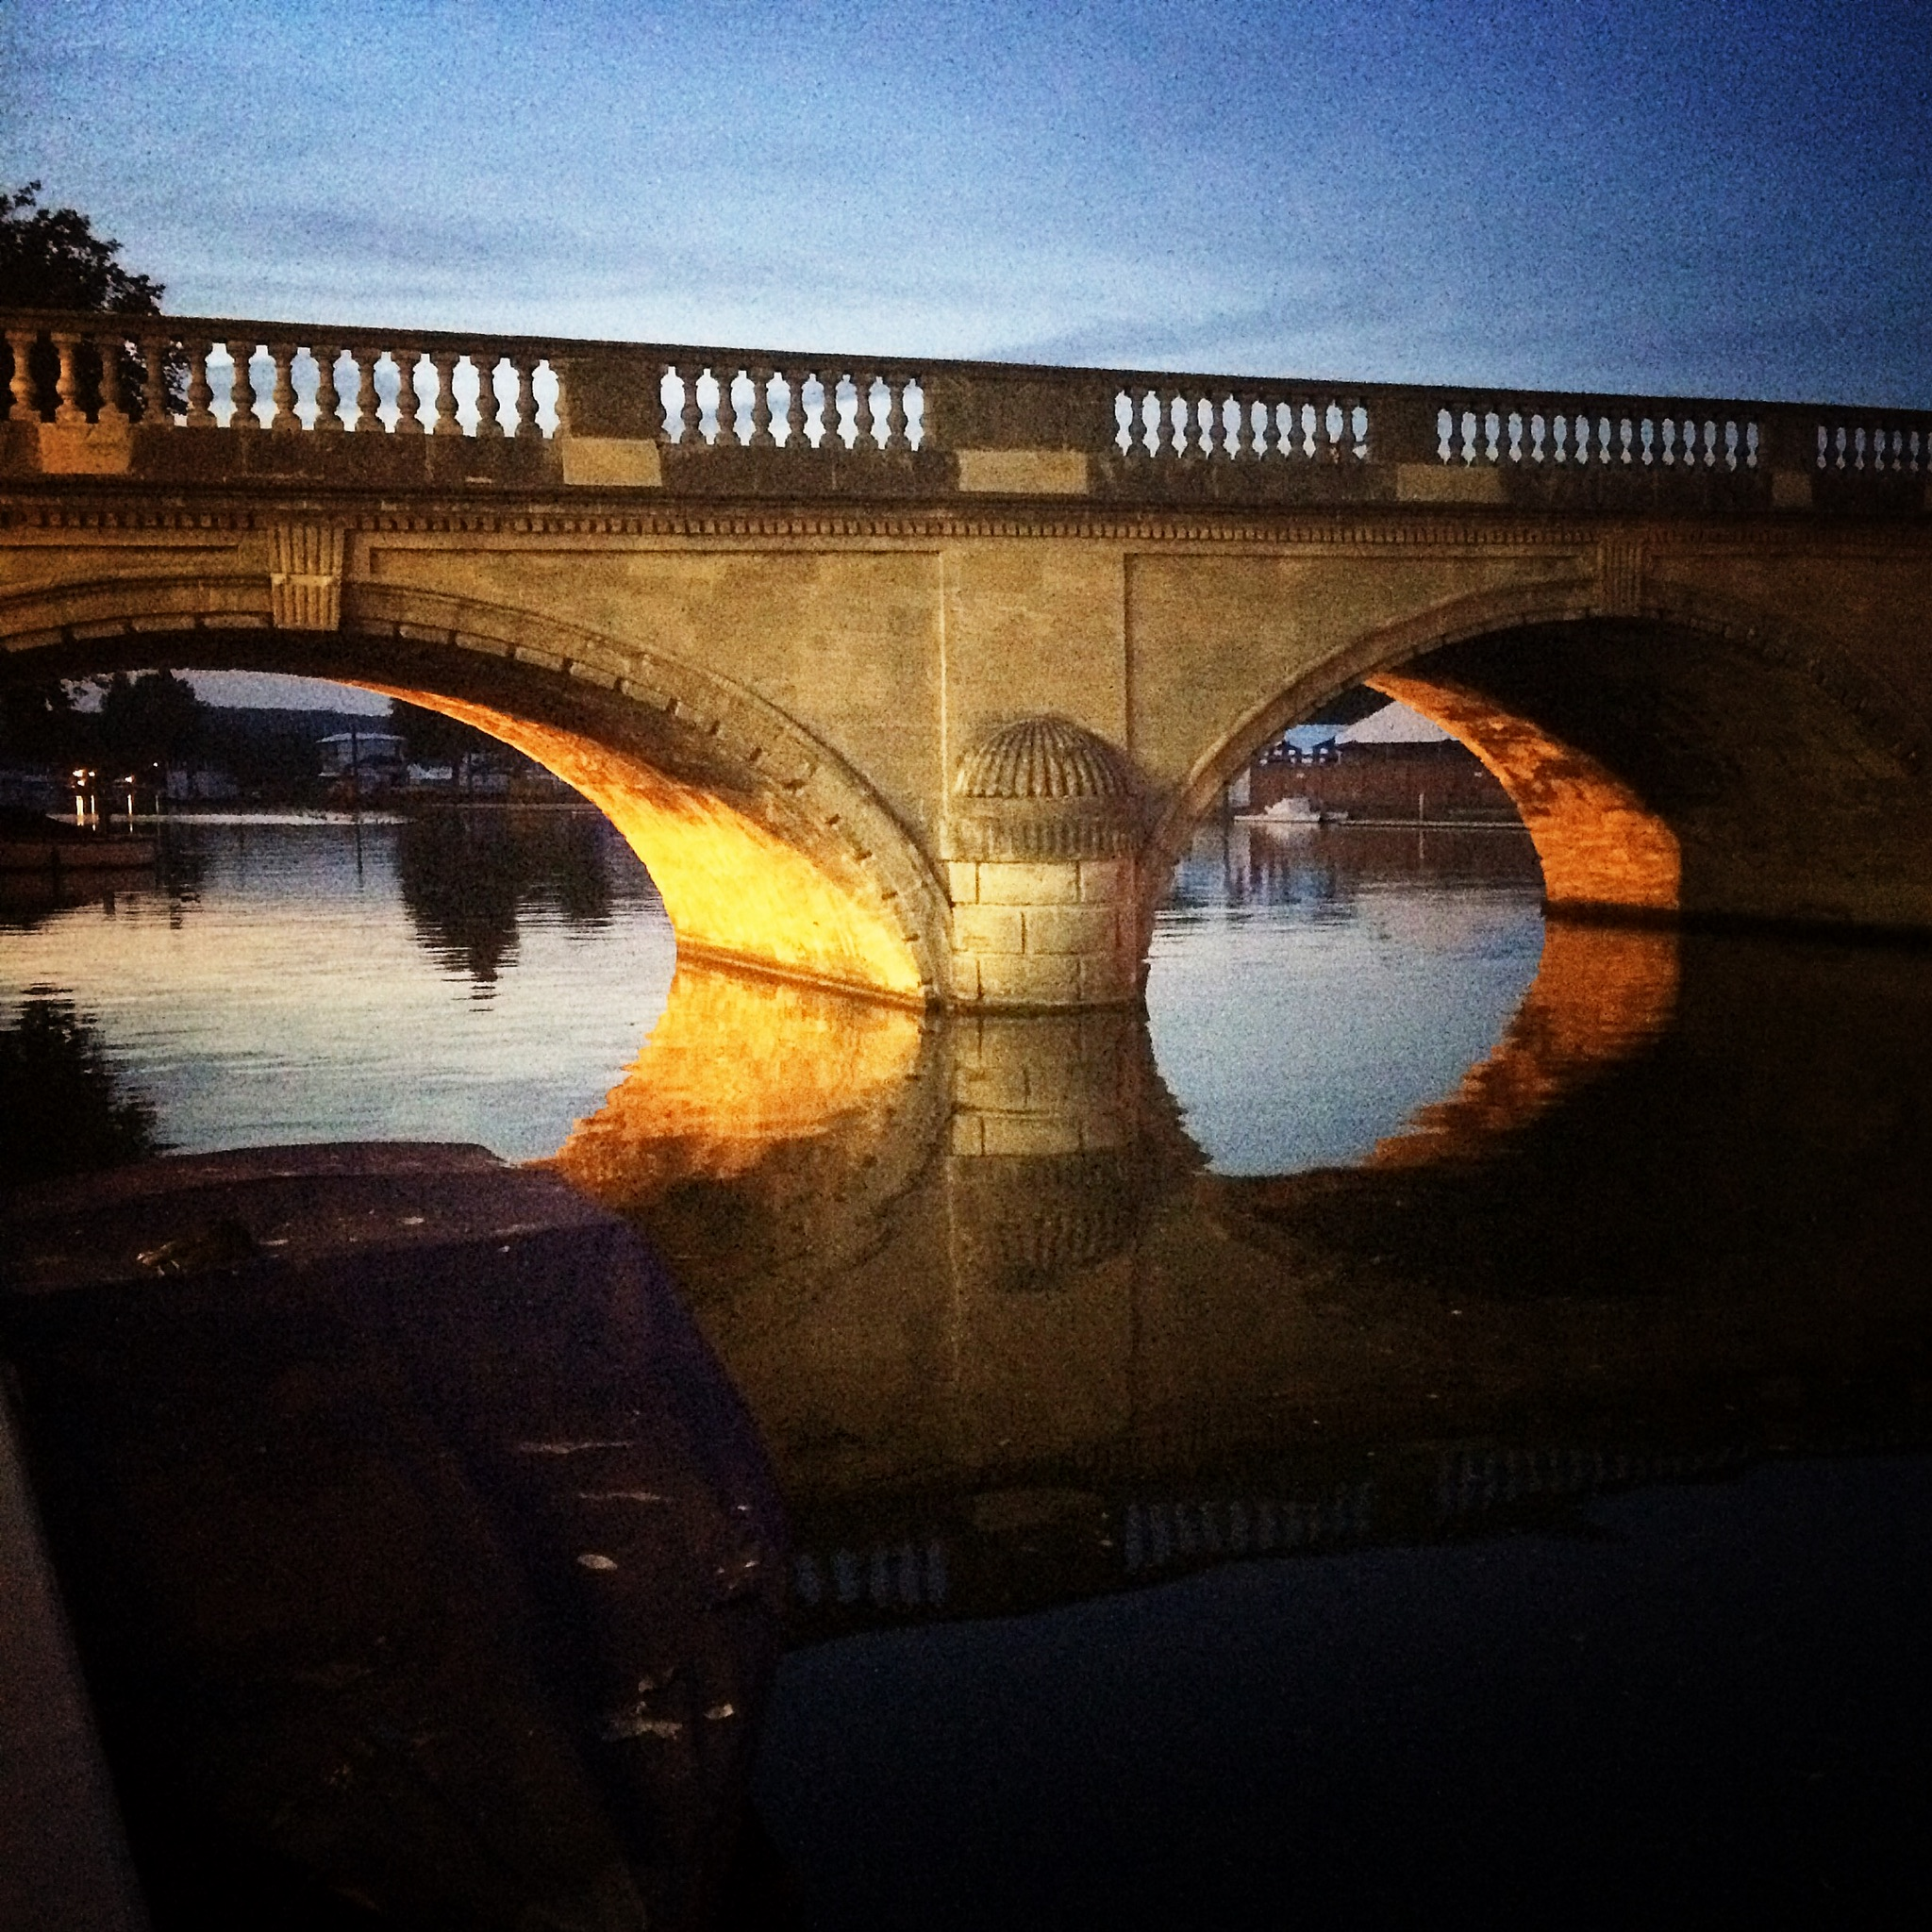 Henley on Thames at its gloaming best